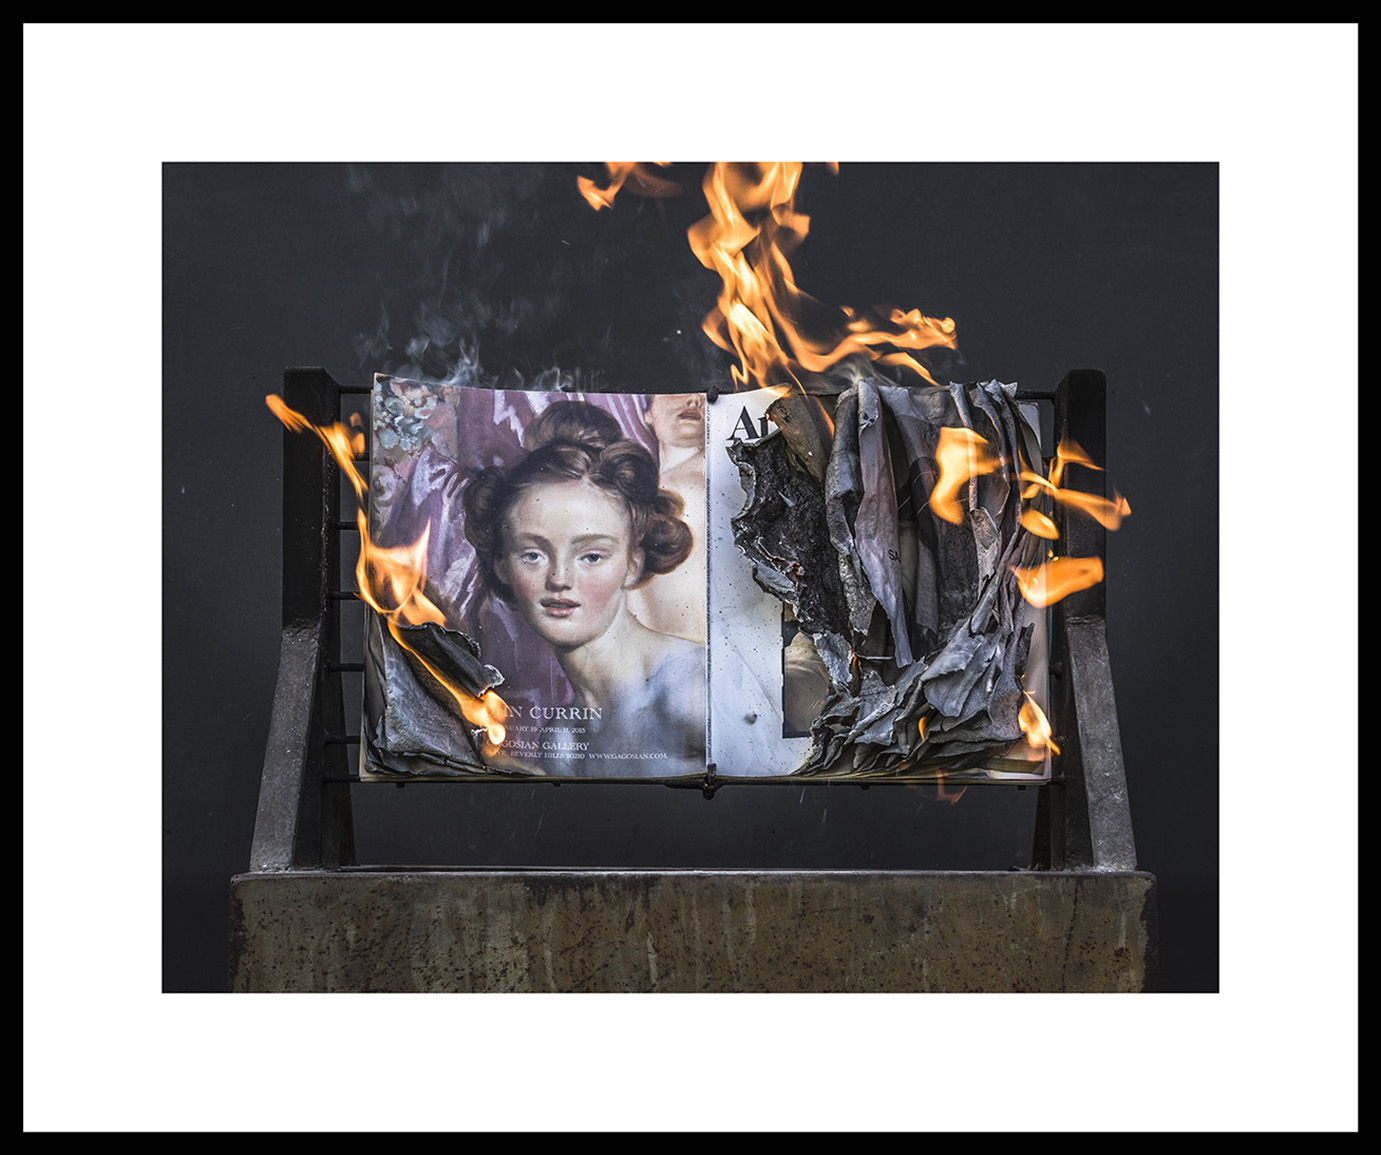 AiA Feb 2015 #0147F, 2019   Archival ink jet print on Epson exhibition fiber paper, framed Image: 18x24in, Paper: 24x30in, Frame: 25x31in, Edition of 5 with 2AP